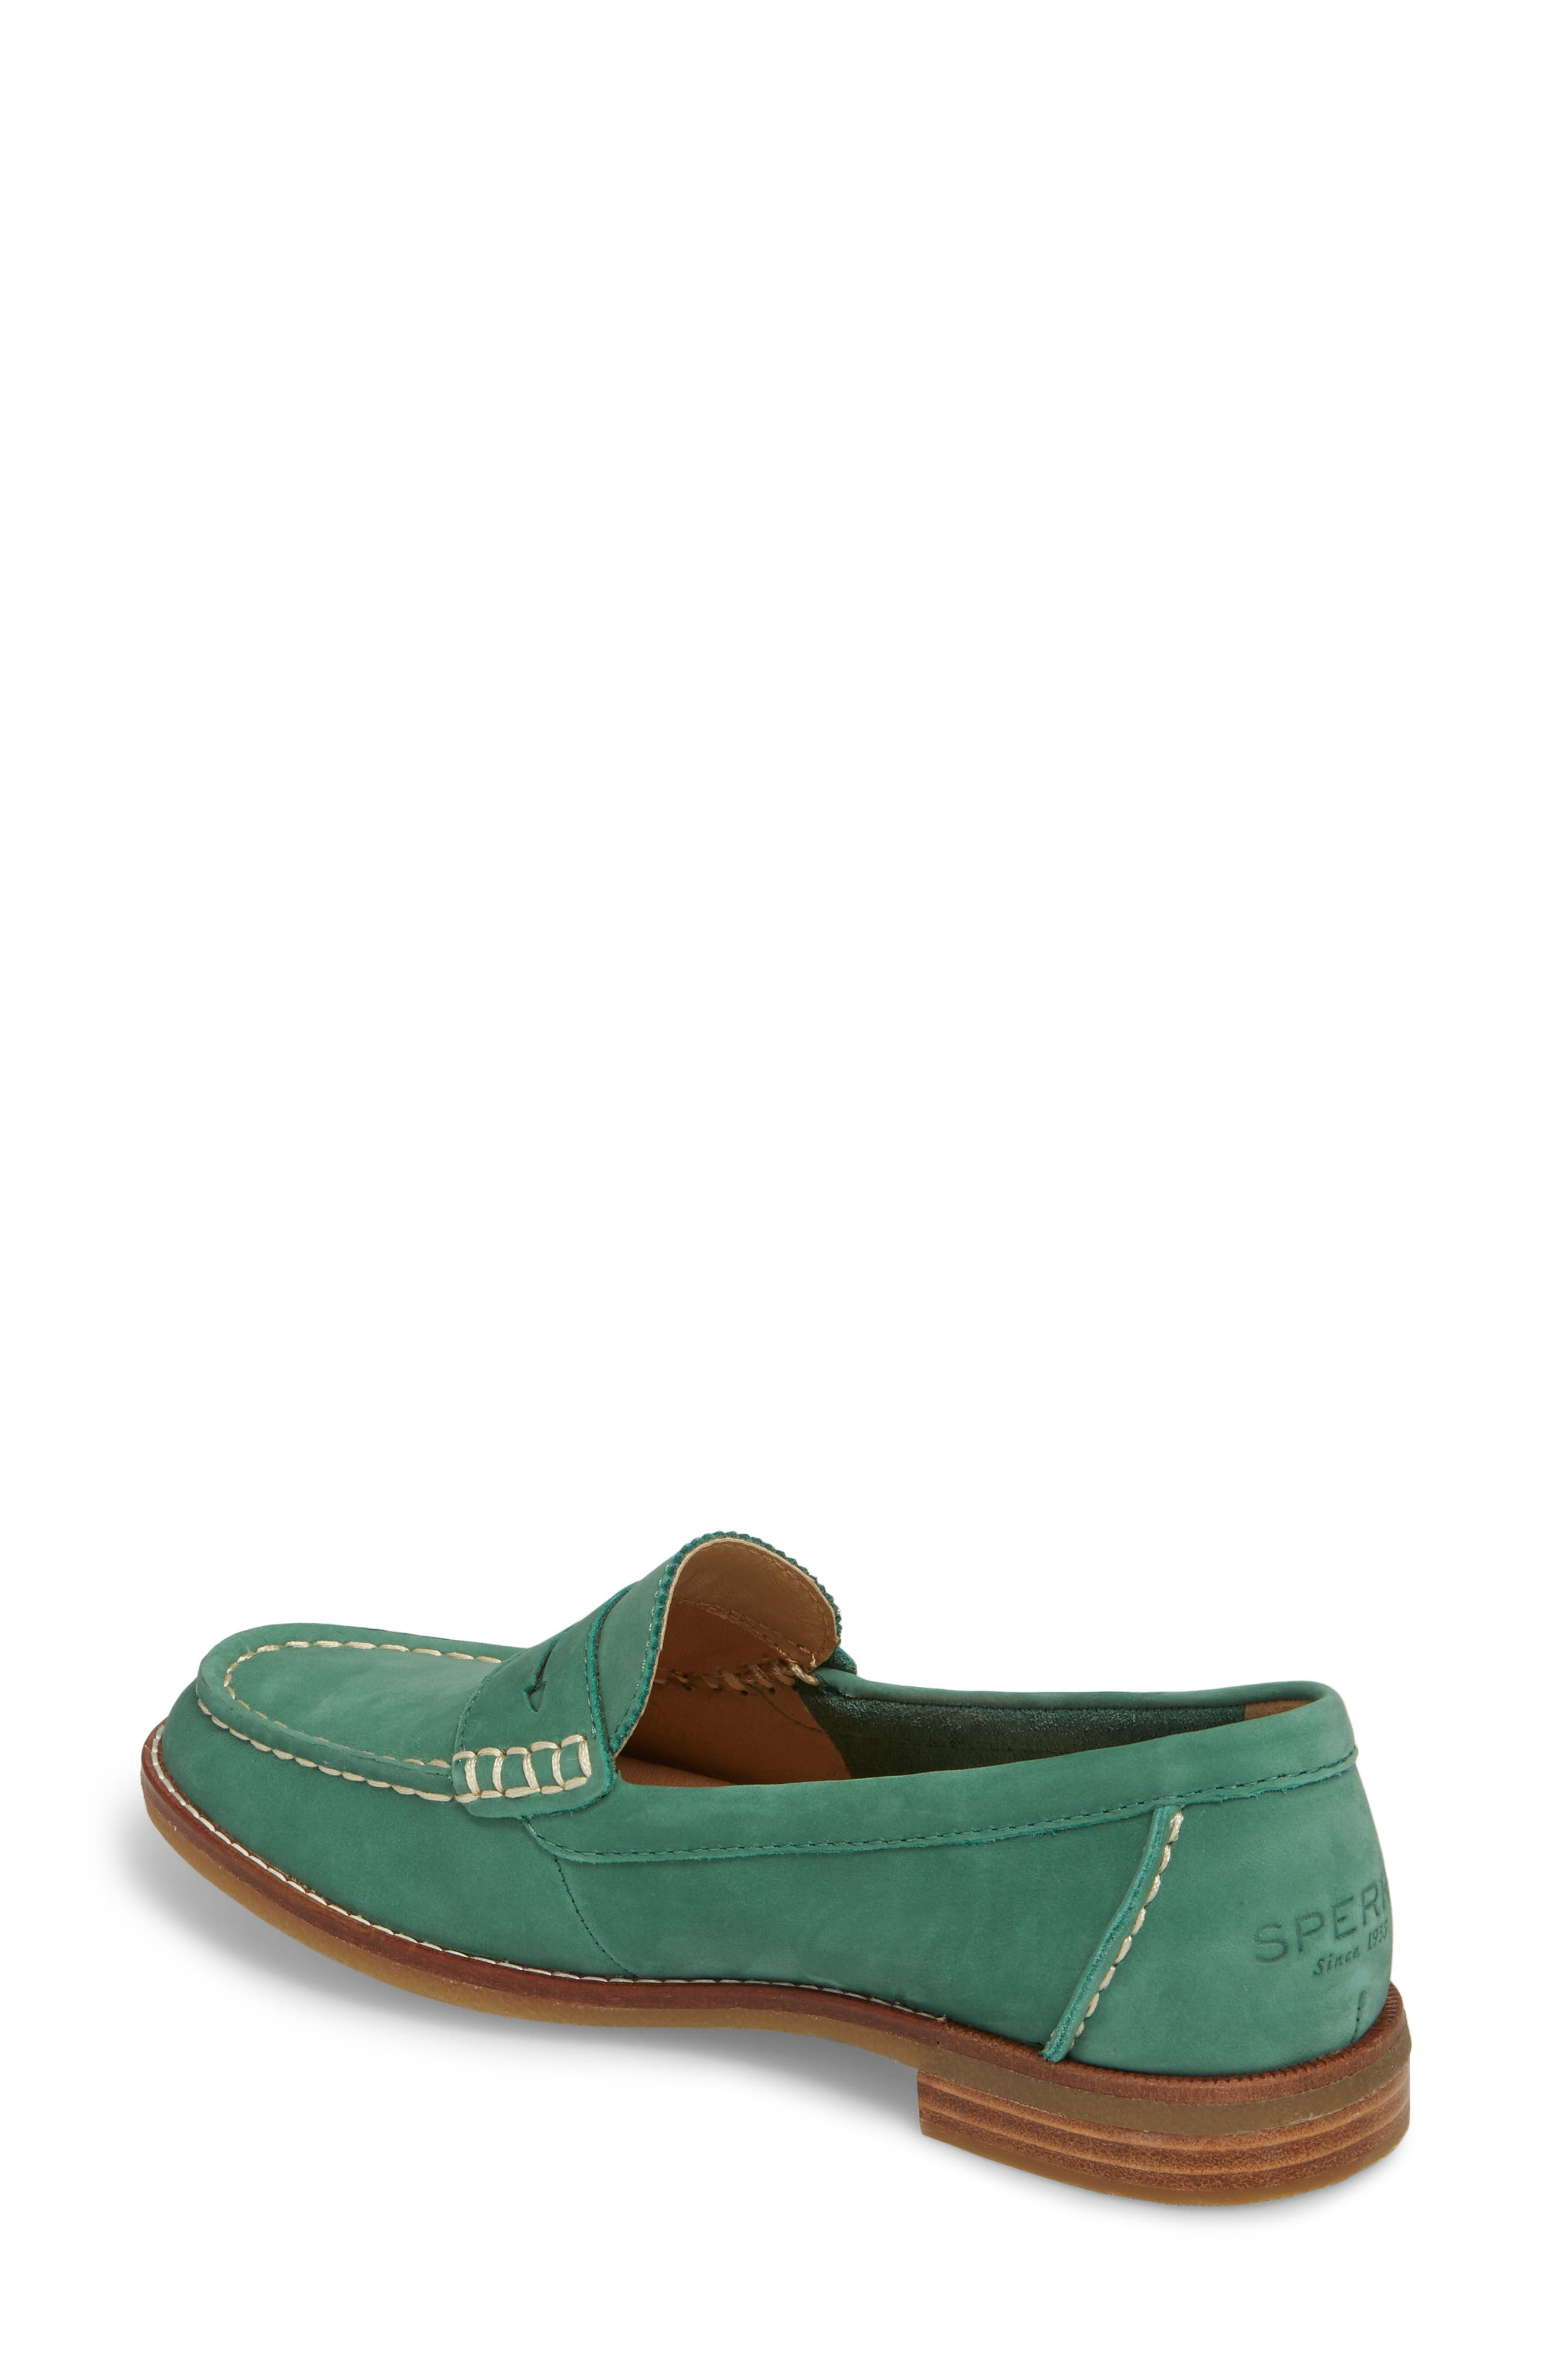 Seaport Penny Loafer,                             Alternate thumbnail 2, color,                             Green Leather